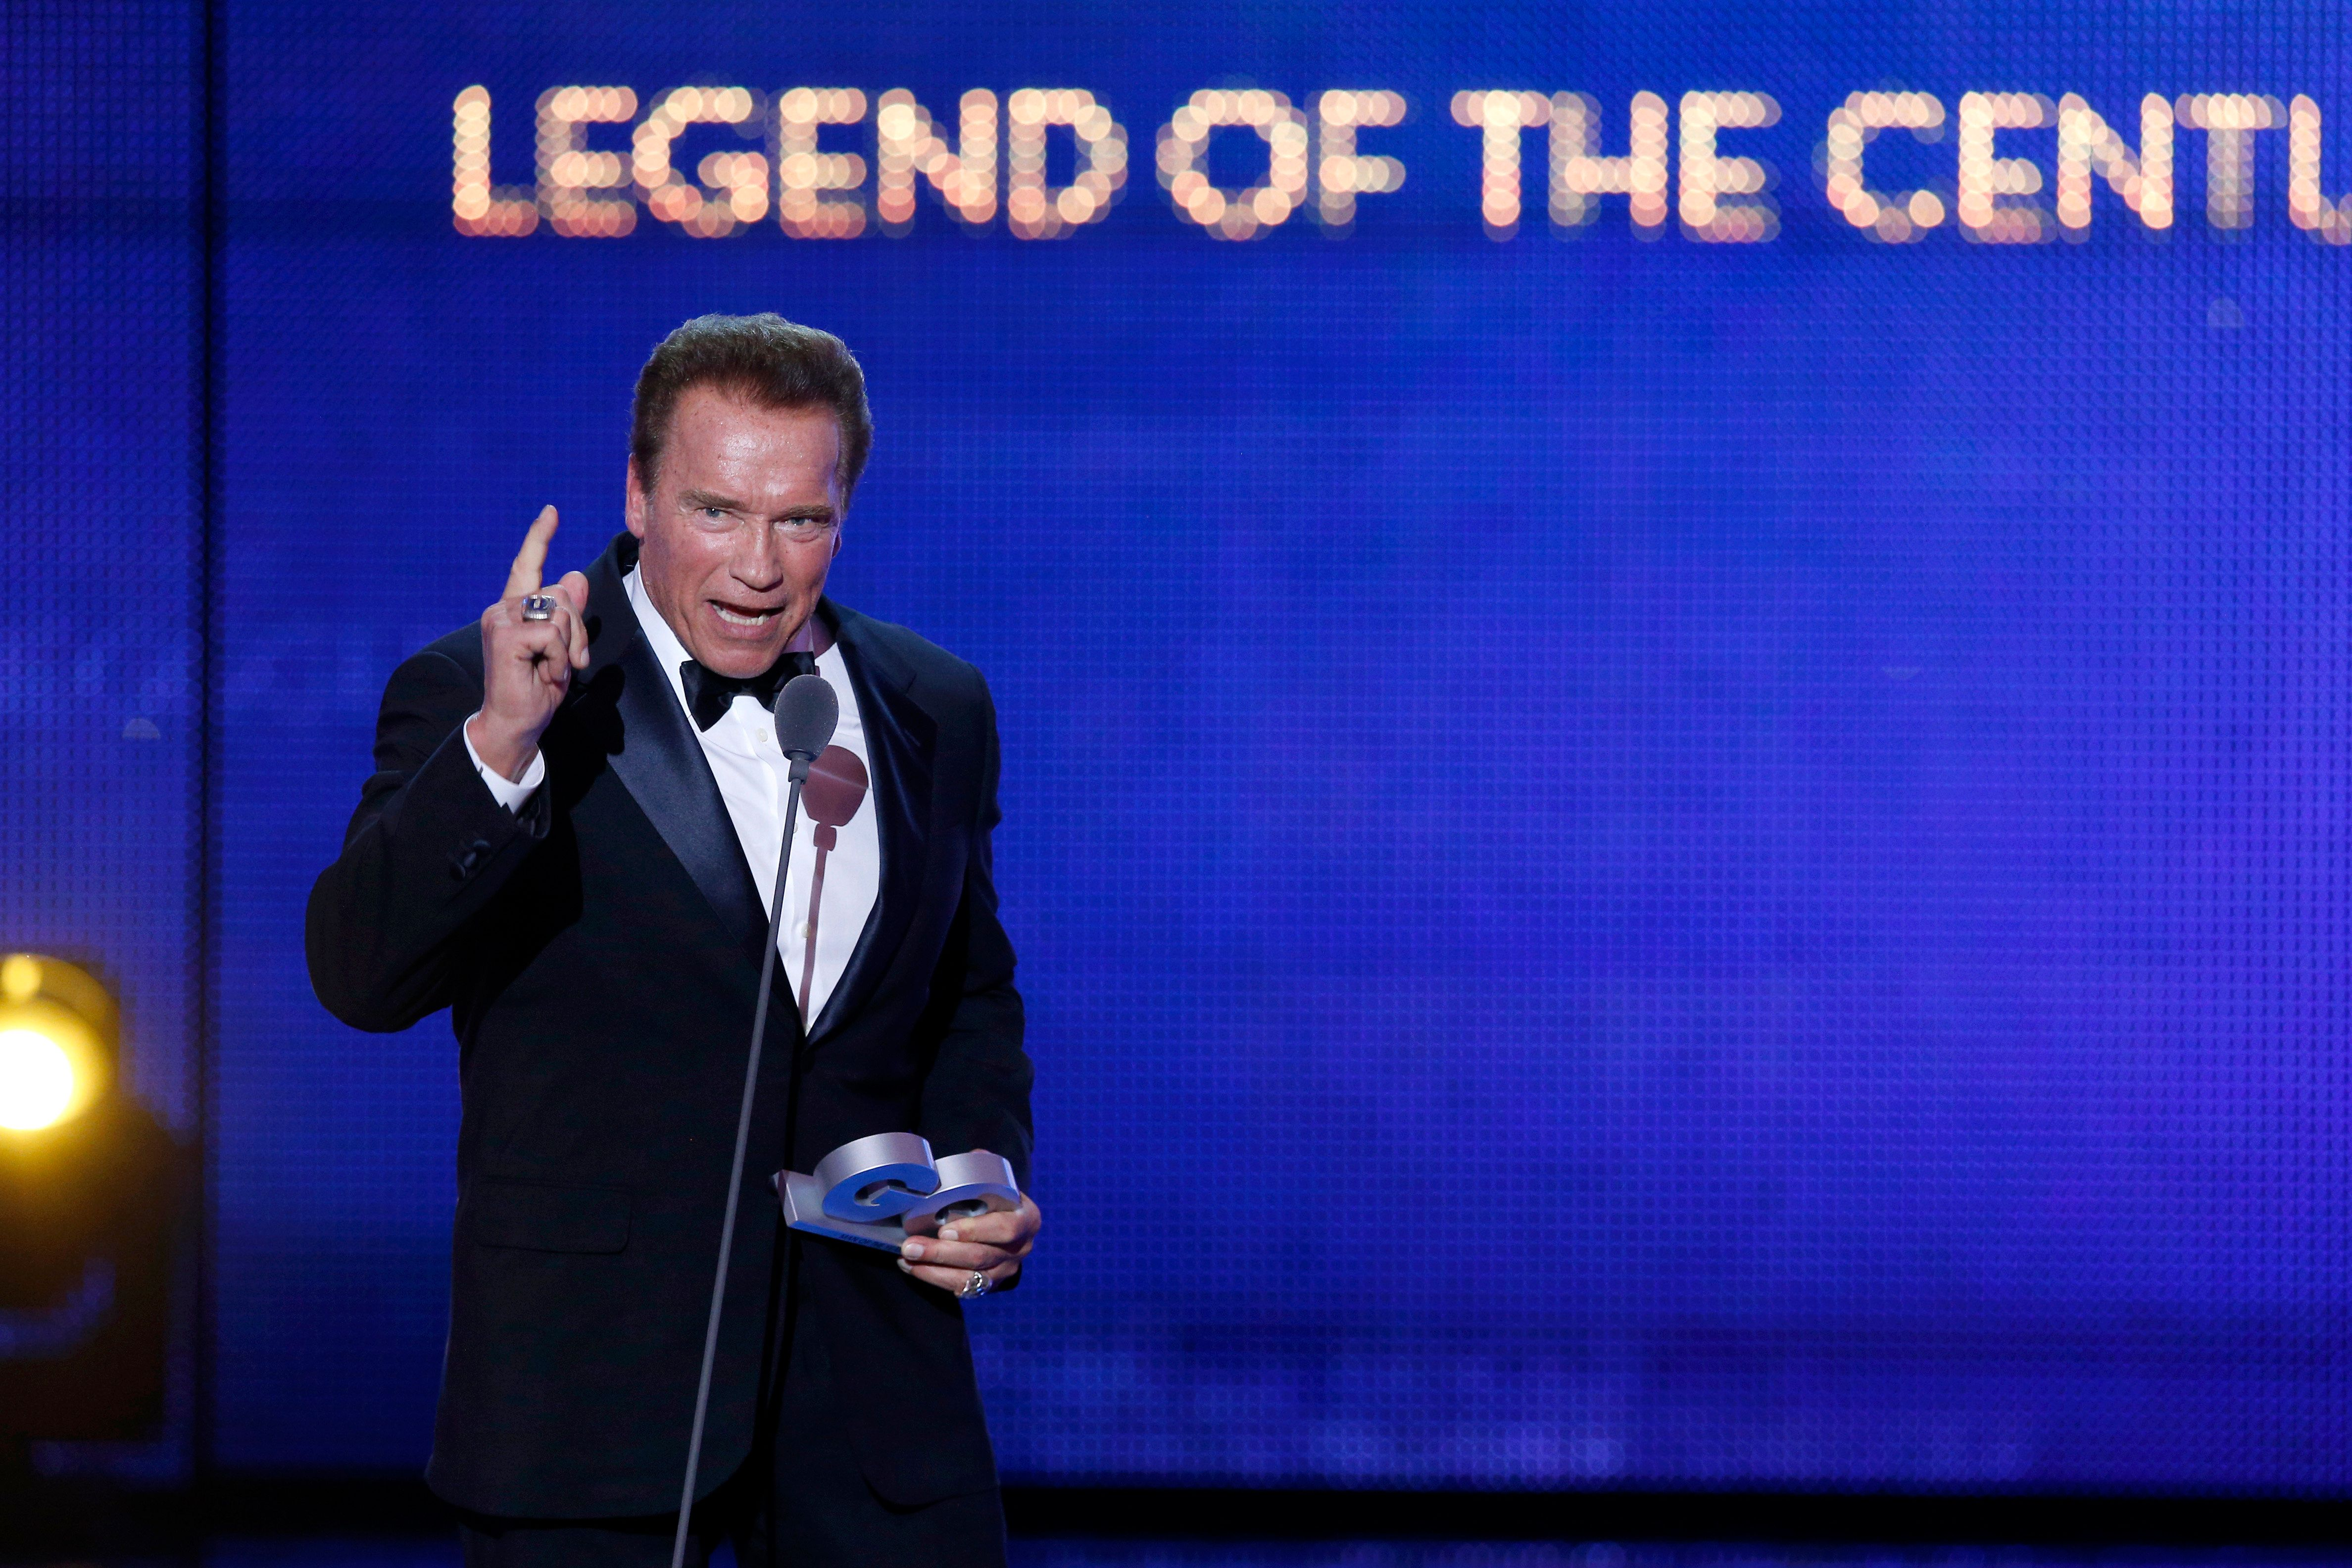 BERLIN, GERMANY - NOVEMBER 09:  'Legend of the Century' GQ Man of the year Arnold Schwarzenegger is seen on stage at the GQ Men of the year Award 2017 show at Komische Oper on November 9, 2017 in Berlin, Germany.  (Photo by Franziska Krug/Getty Images for GQ)